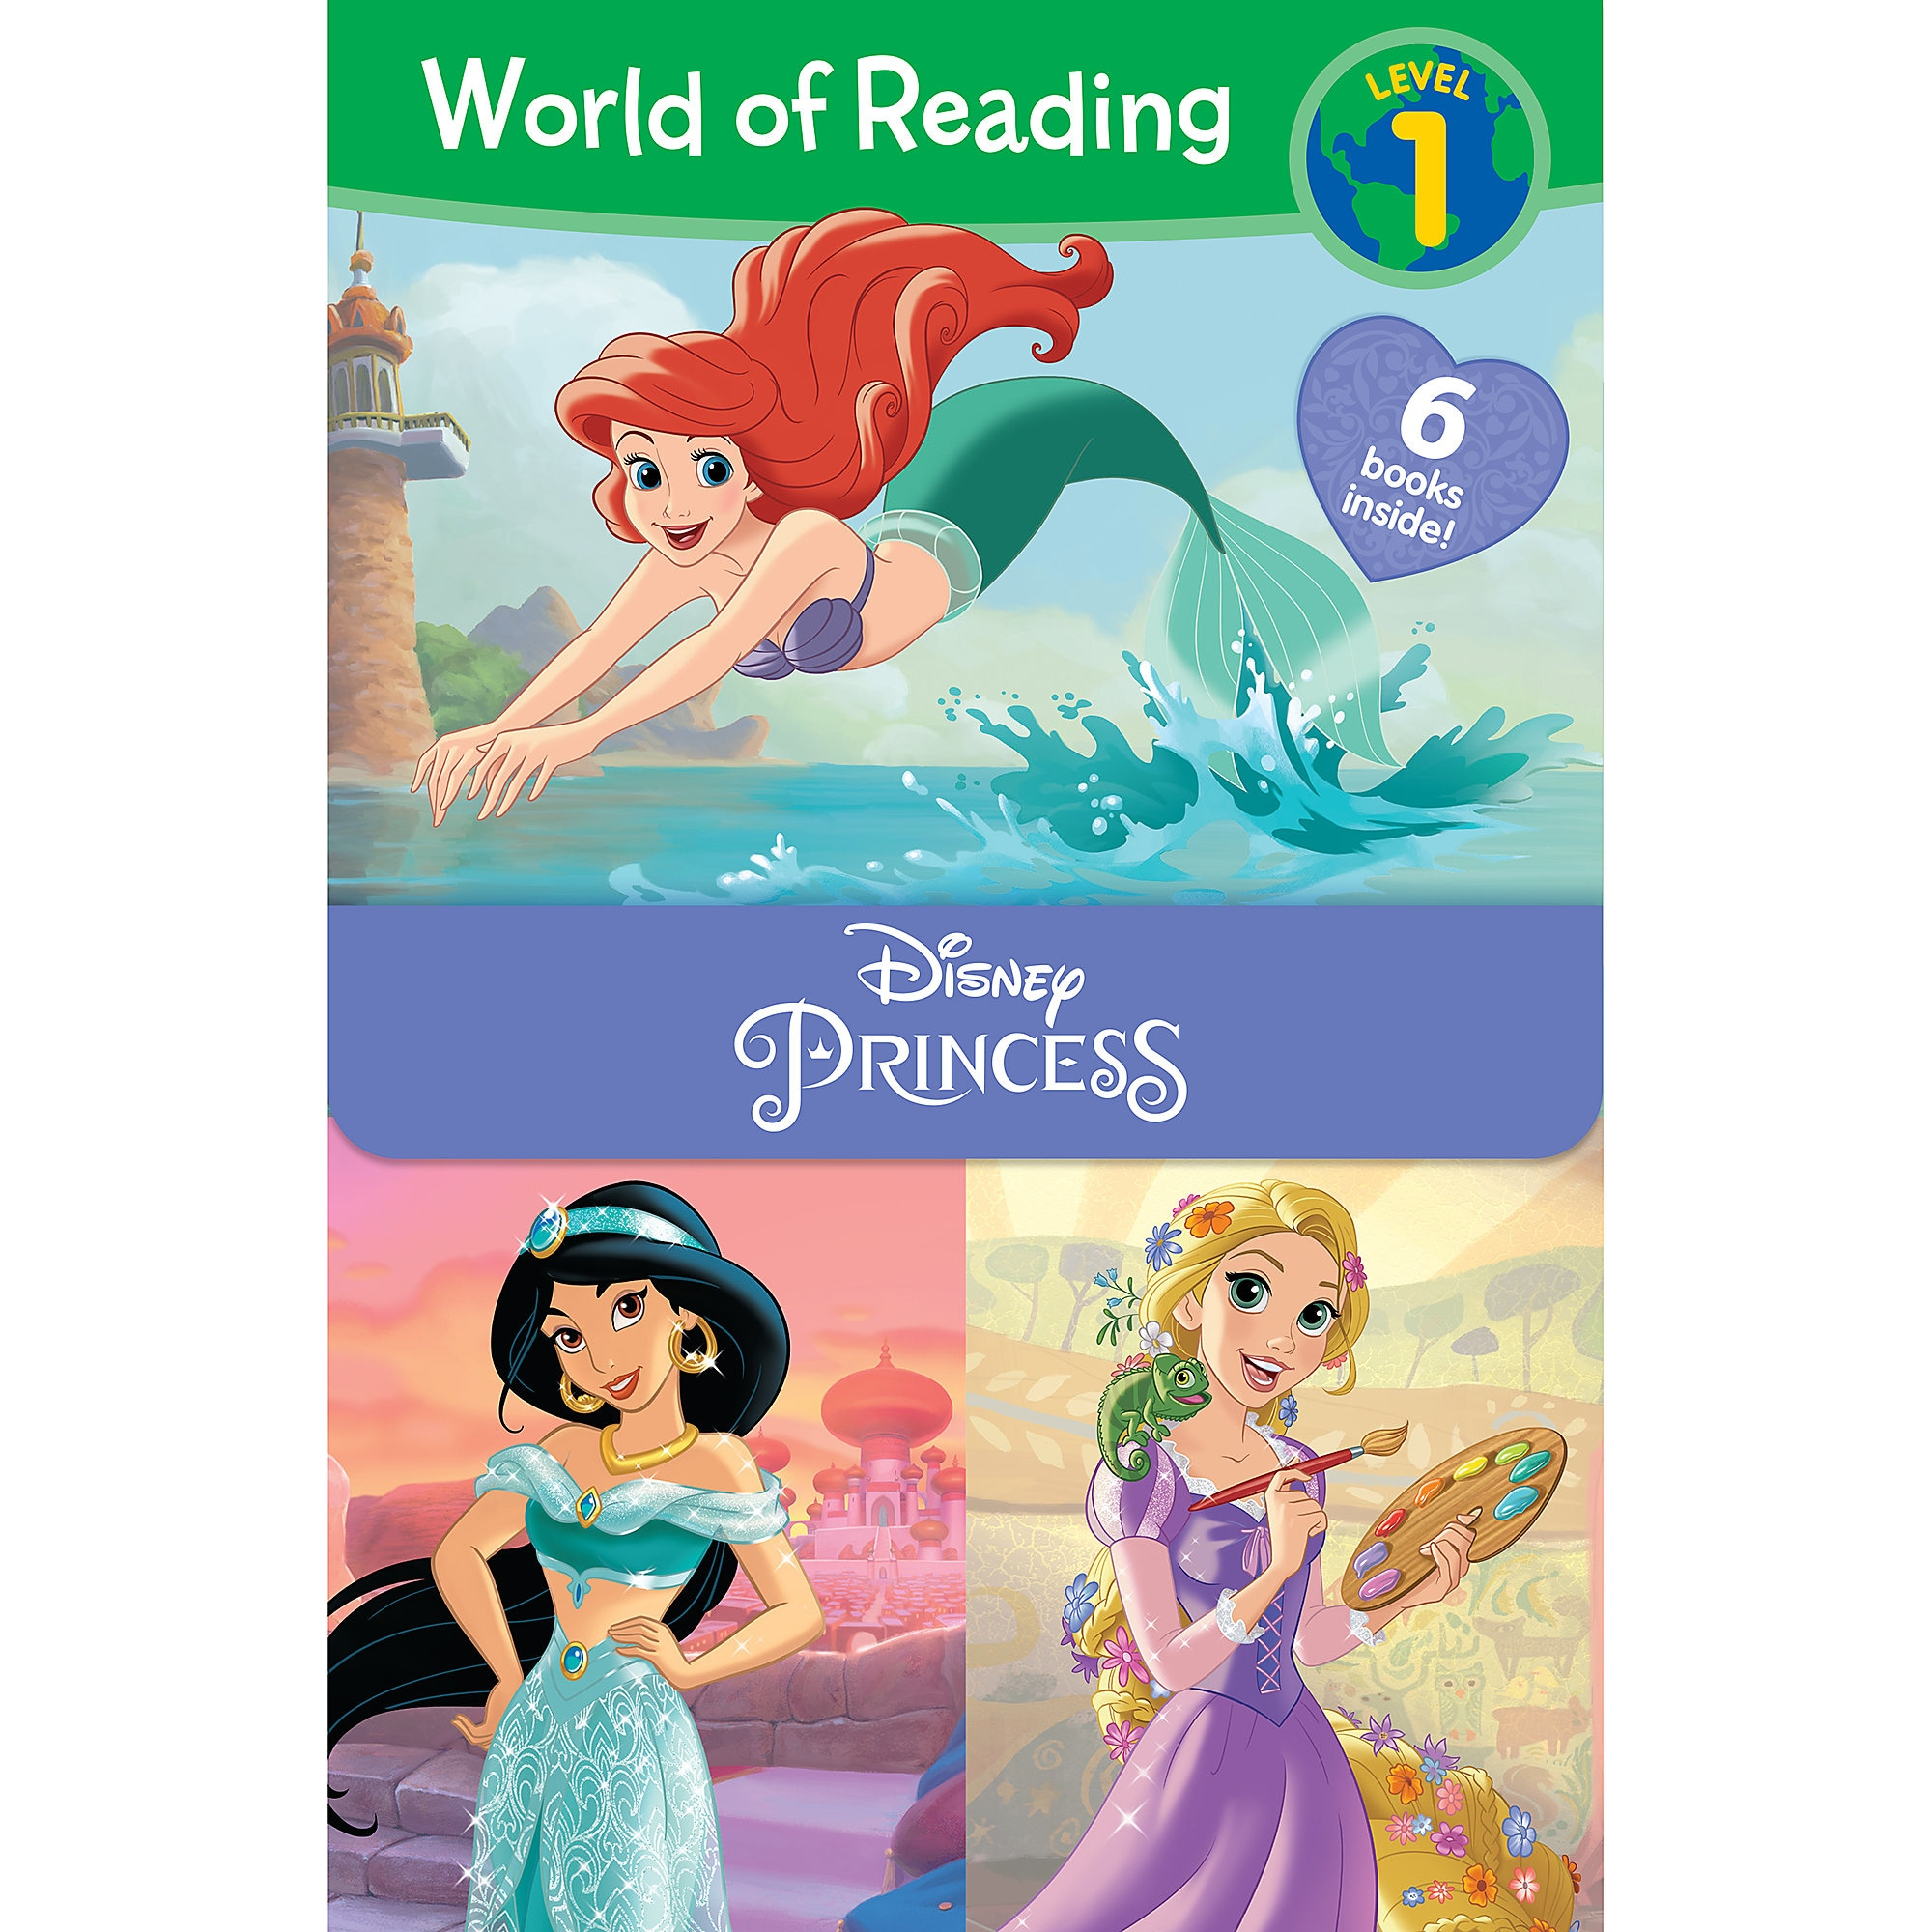 Disney Princess World of Reading Book